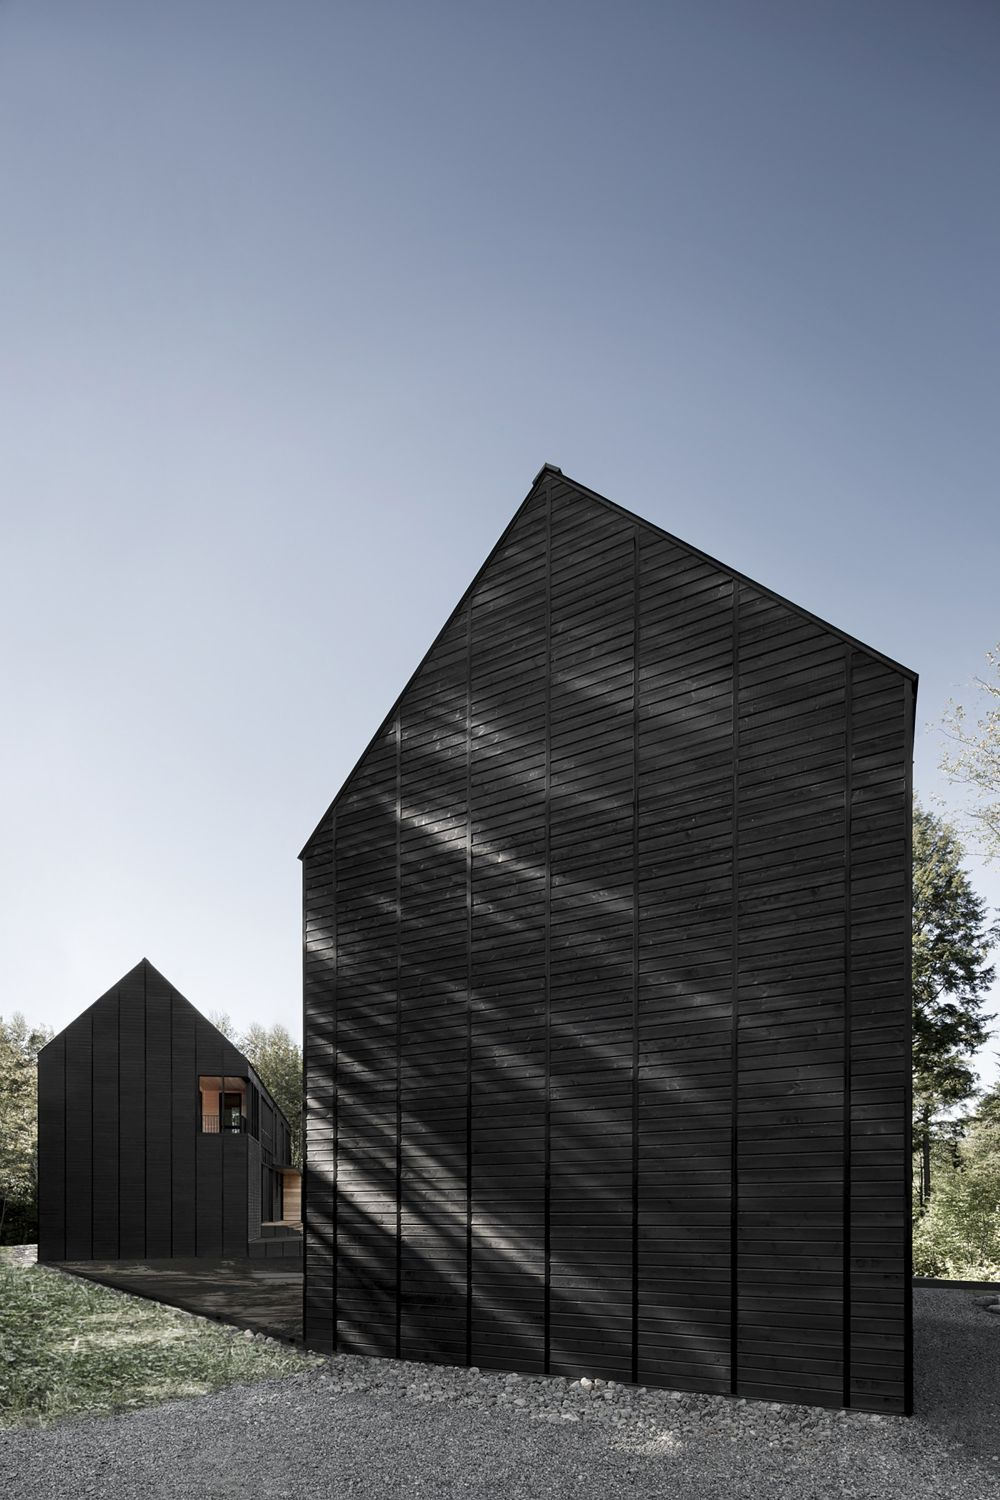 1556785098 207 houses with black cladding that are in harmony with their surroundings - Houses With Black Cladding That Are in Harmony With their Surroundings